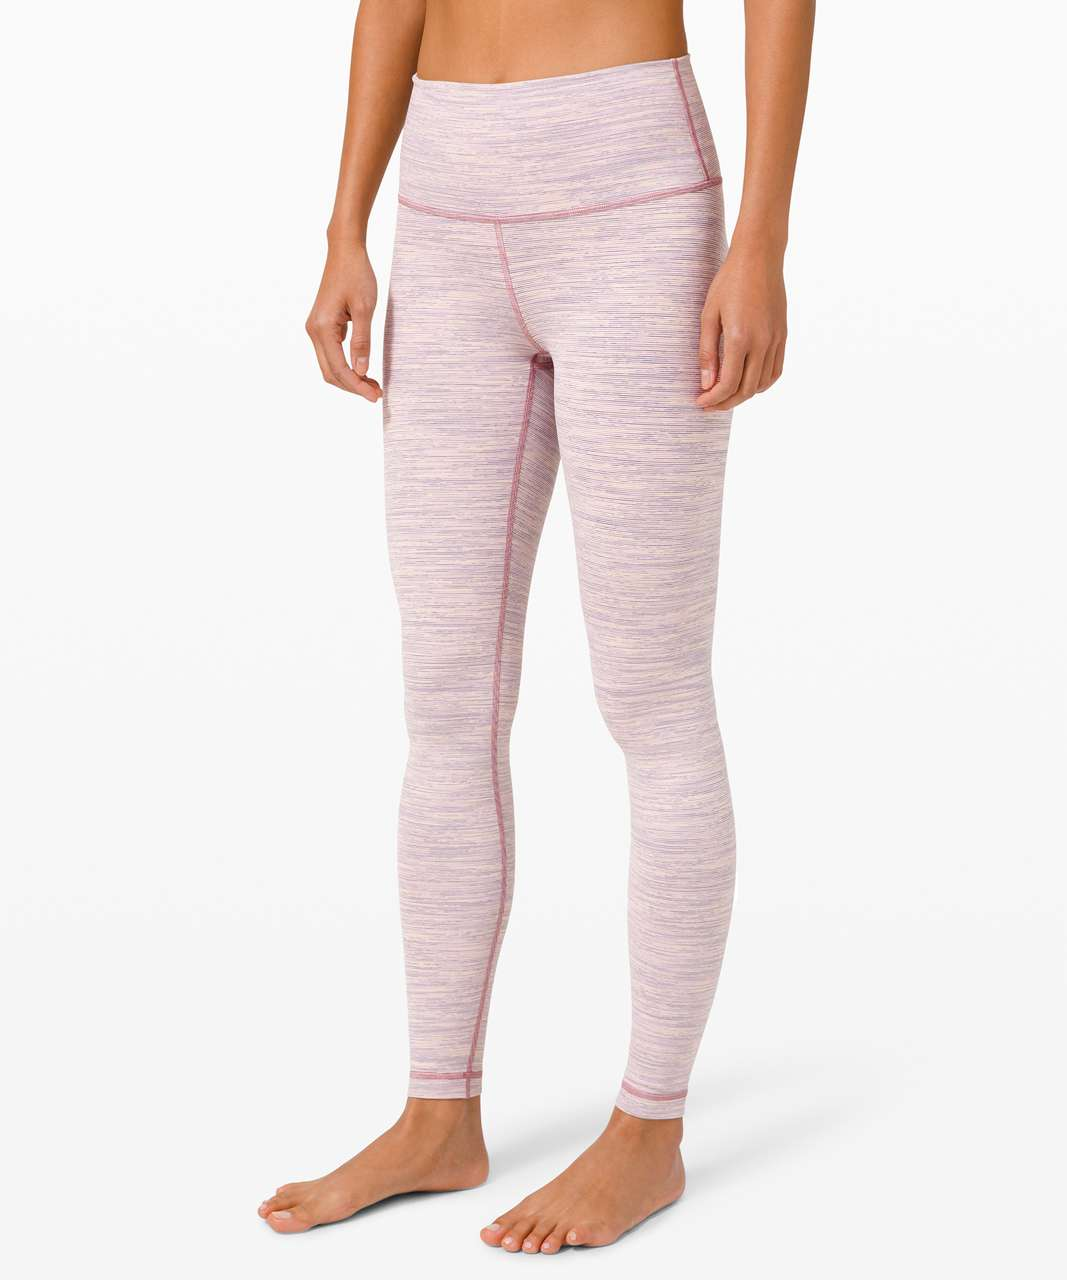 """Lululemon Wunder Under High-Rise Tight 28"""" - Wee Are From Space Pink Bliss Vintage Mauve"""